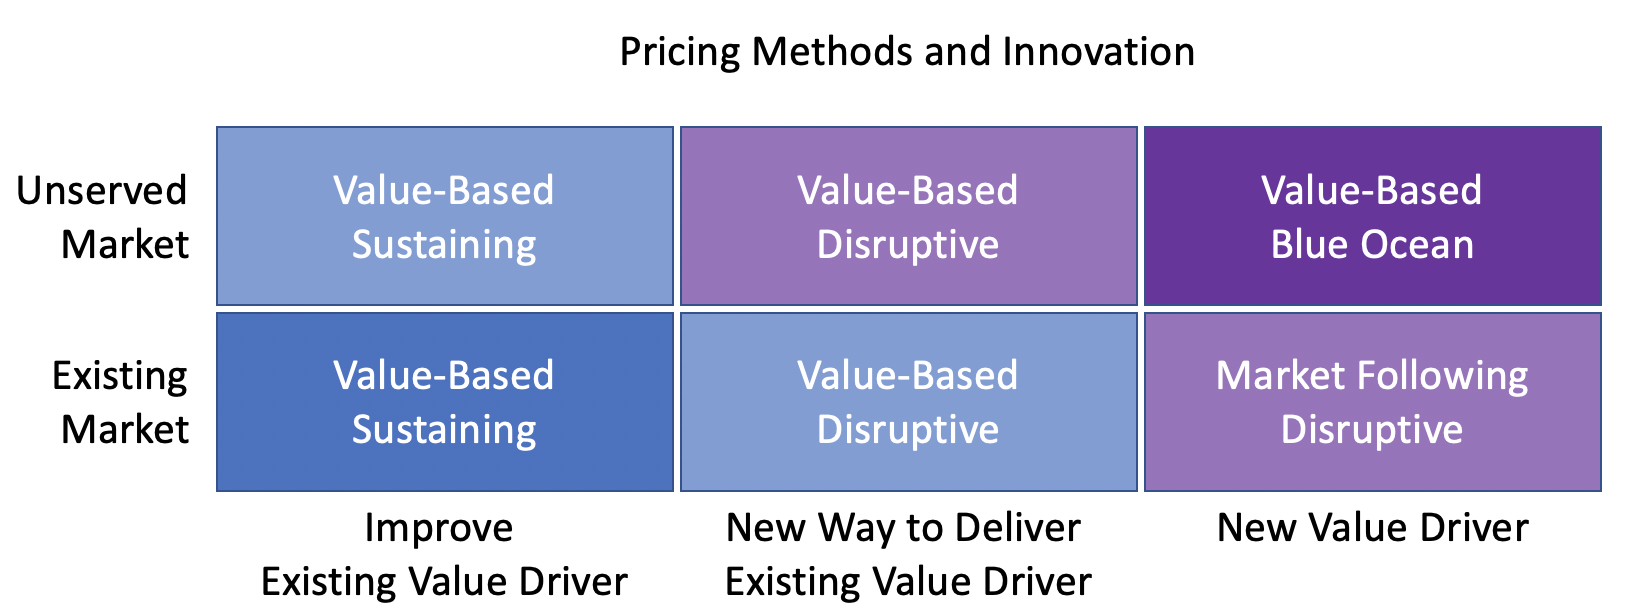 Pricing Methods and Innovation